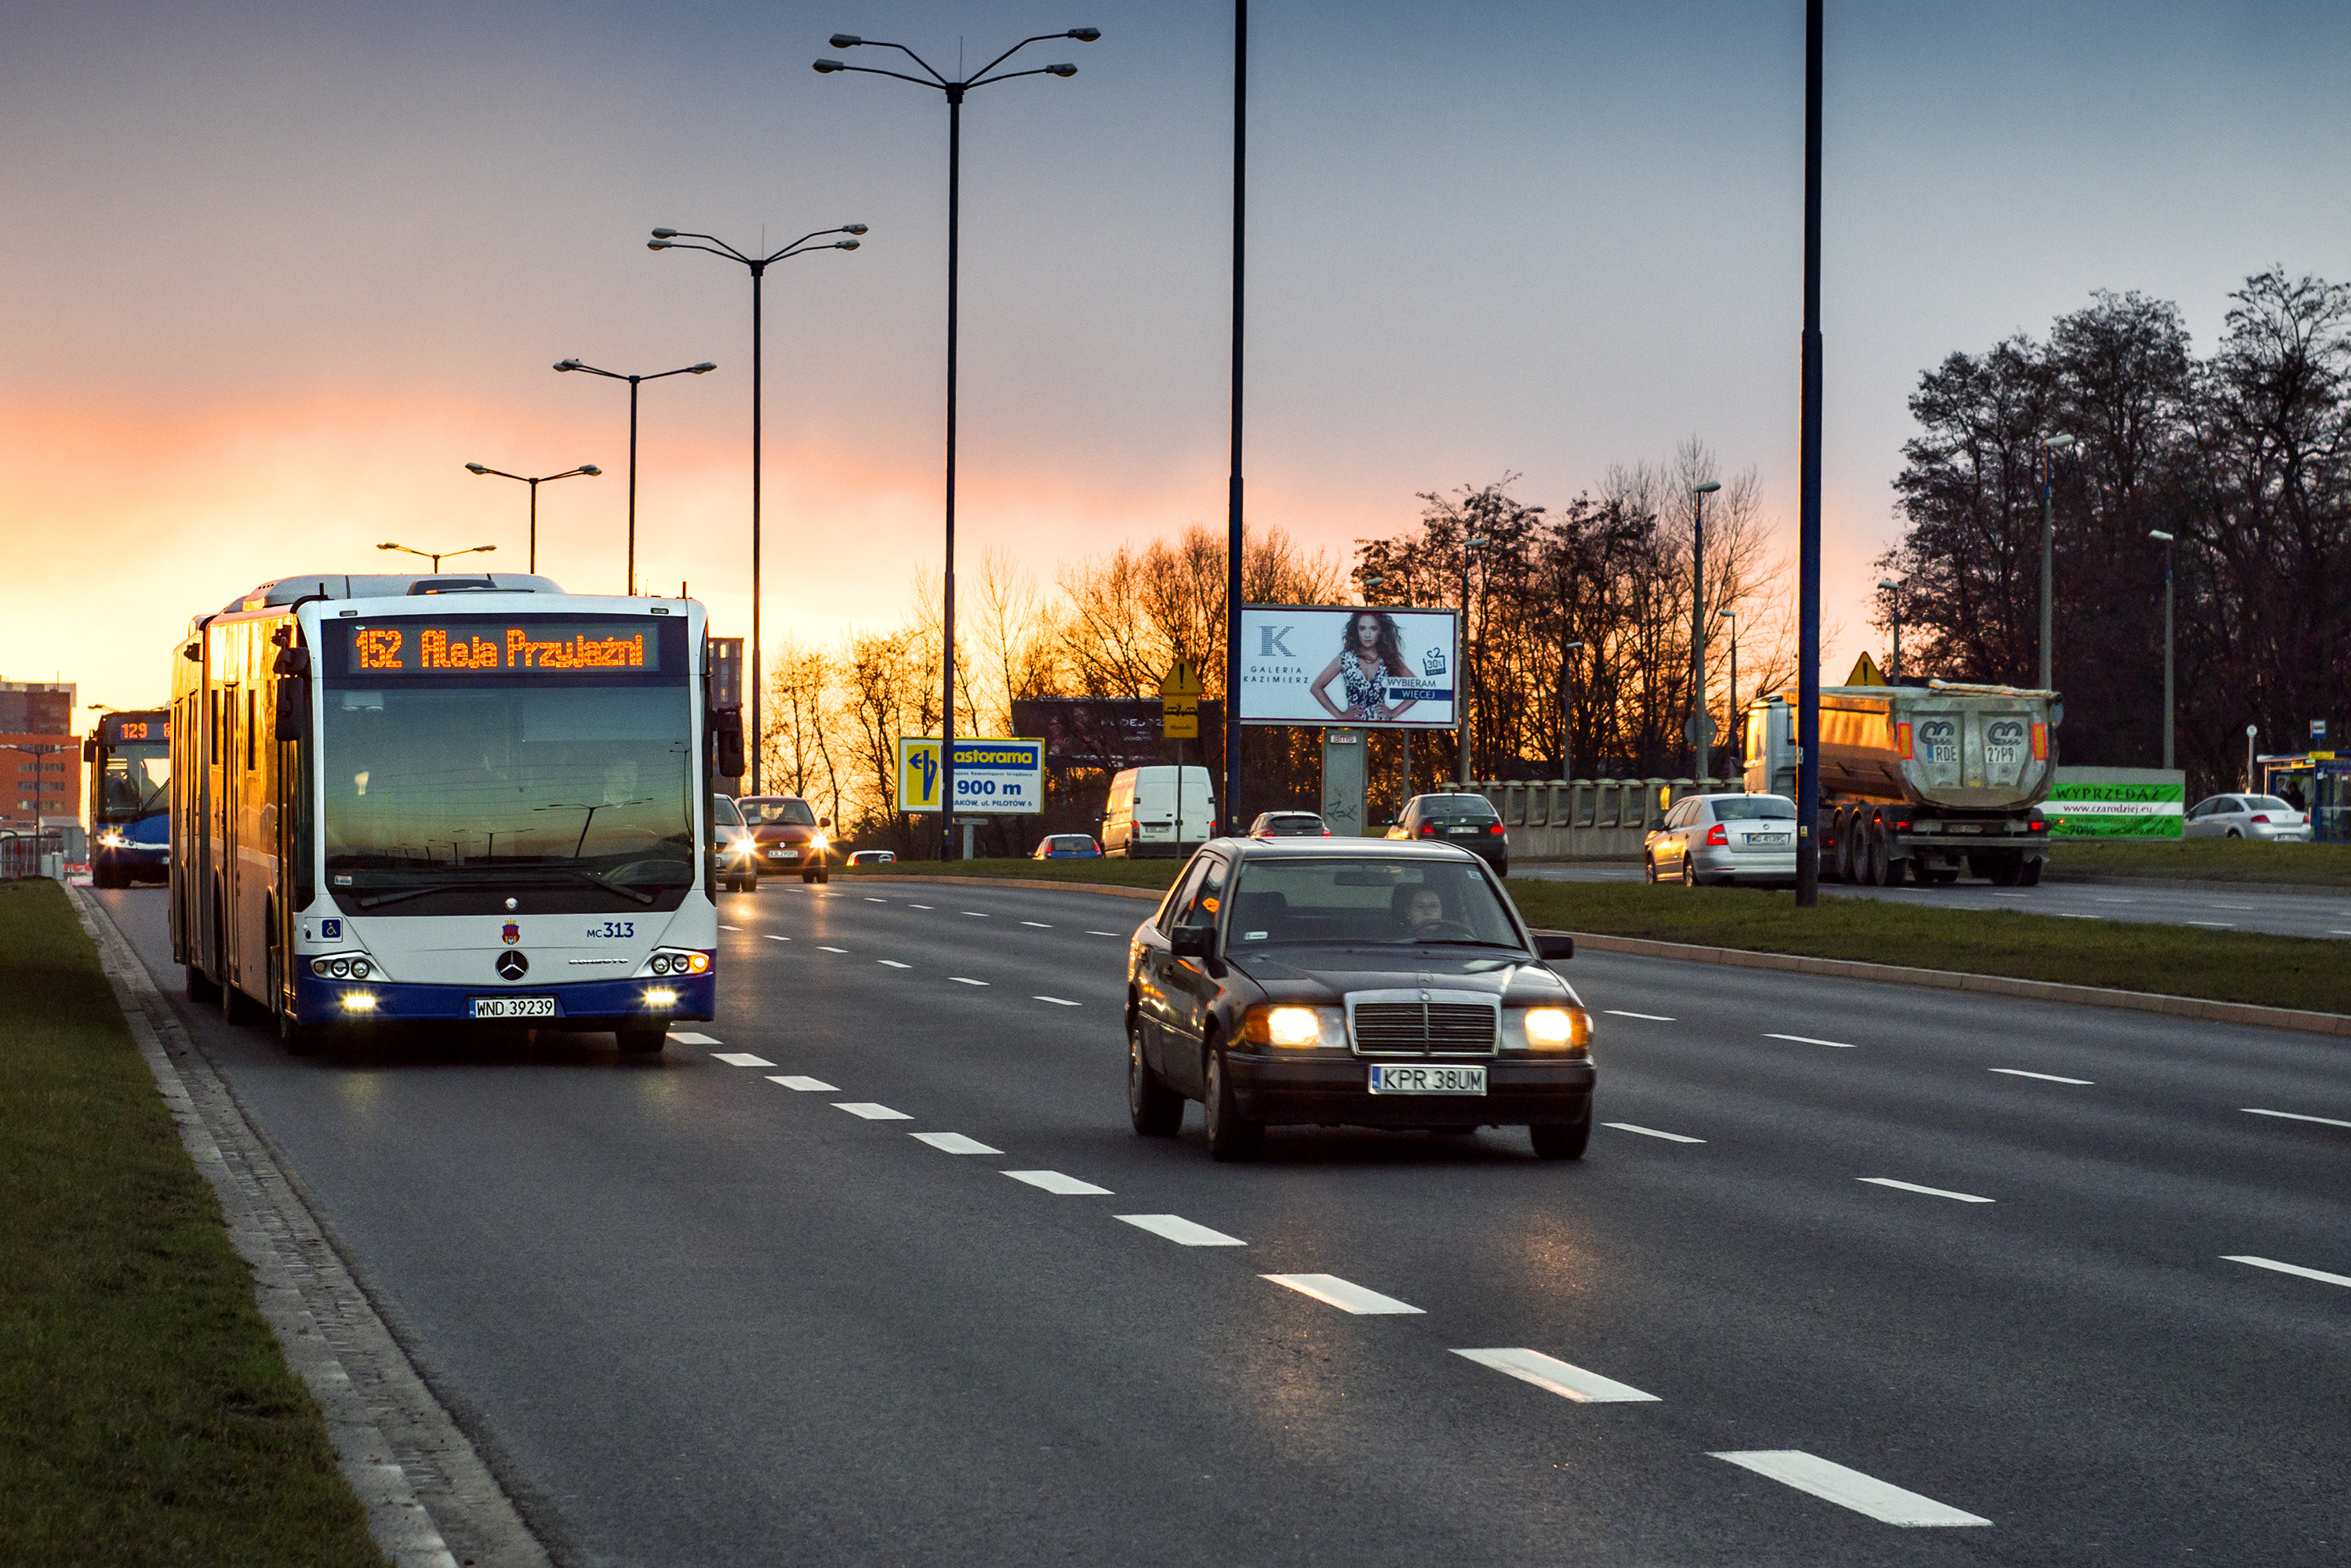 Bus in Krakow, Bus, City, Mercedes, Public, HQ Photo